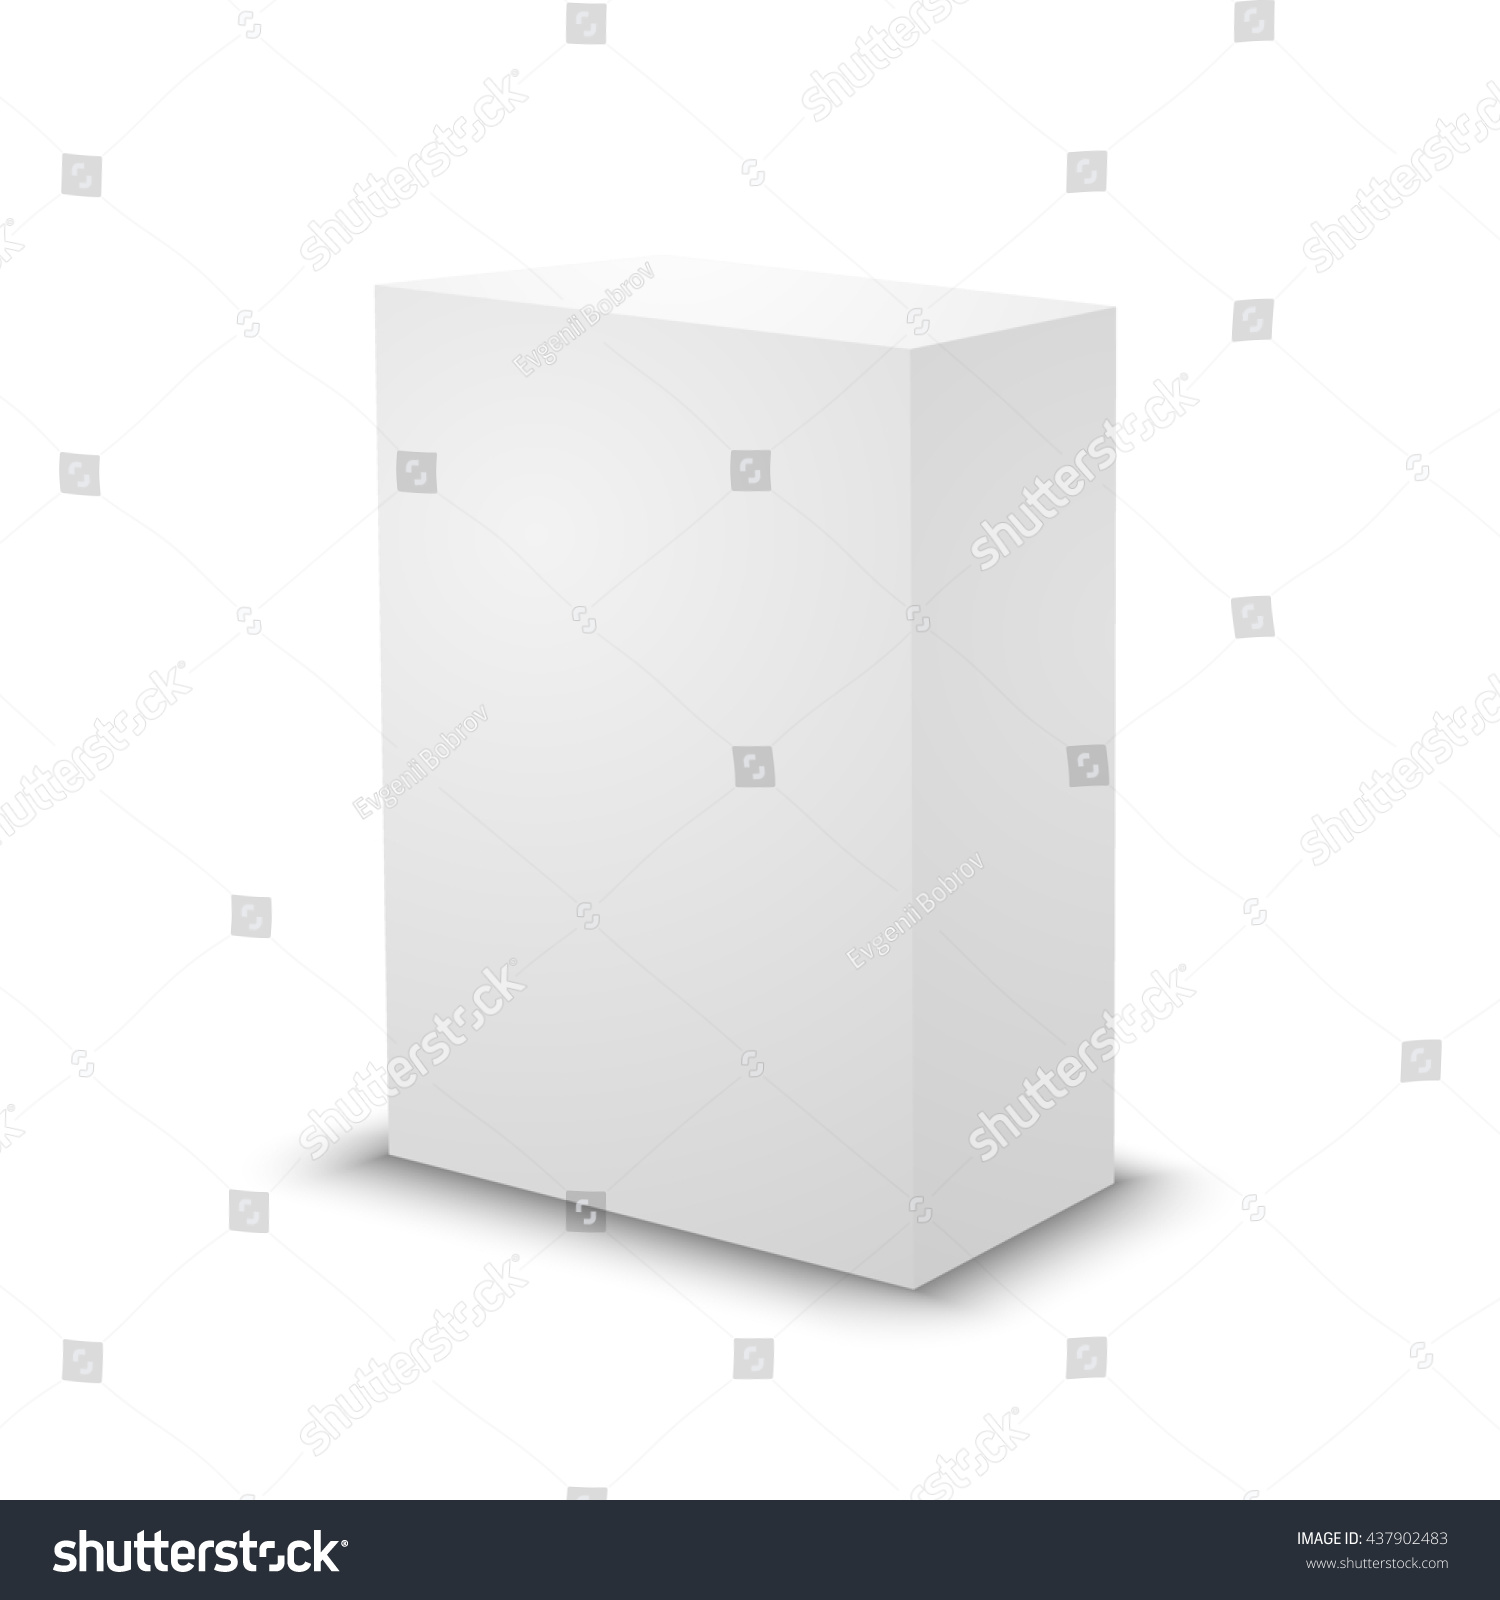 Blank White Prism On White Background Stock Illustration 437902483